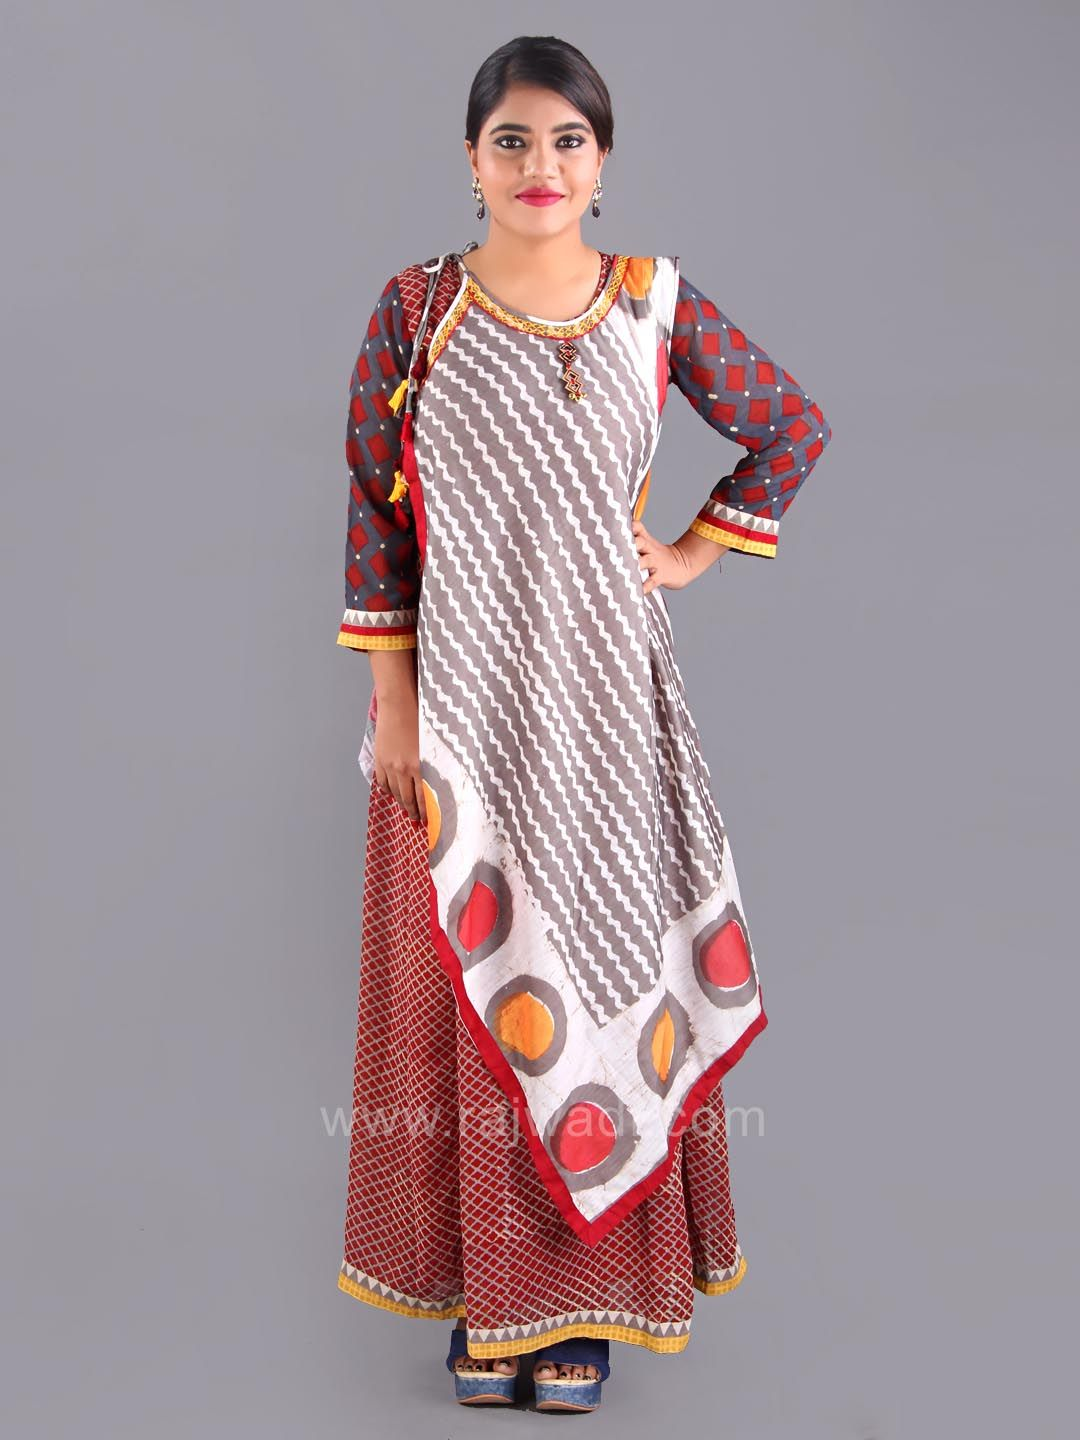 fb79df55e Stylish Short Long Layered Kurti with Latkan # rajwadi #kurtis ...